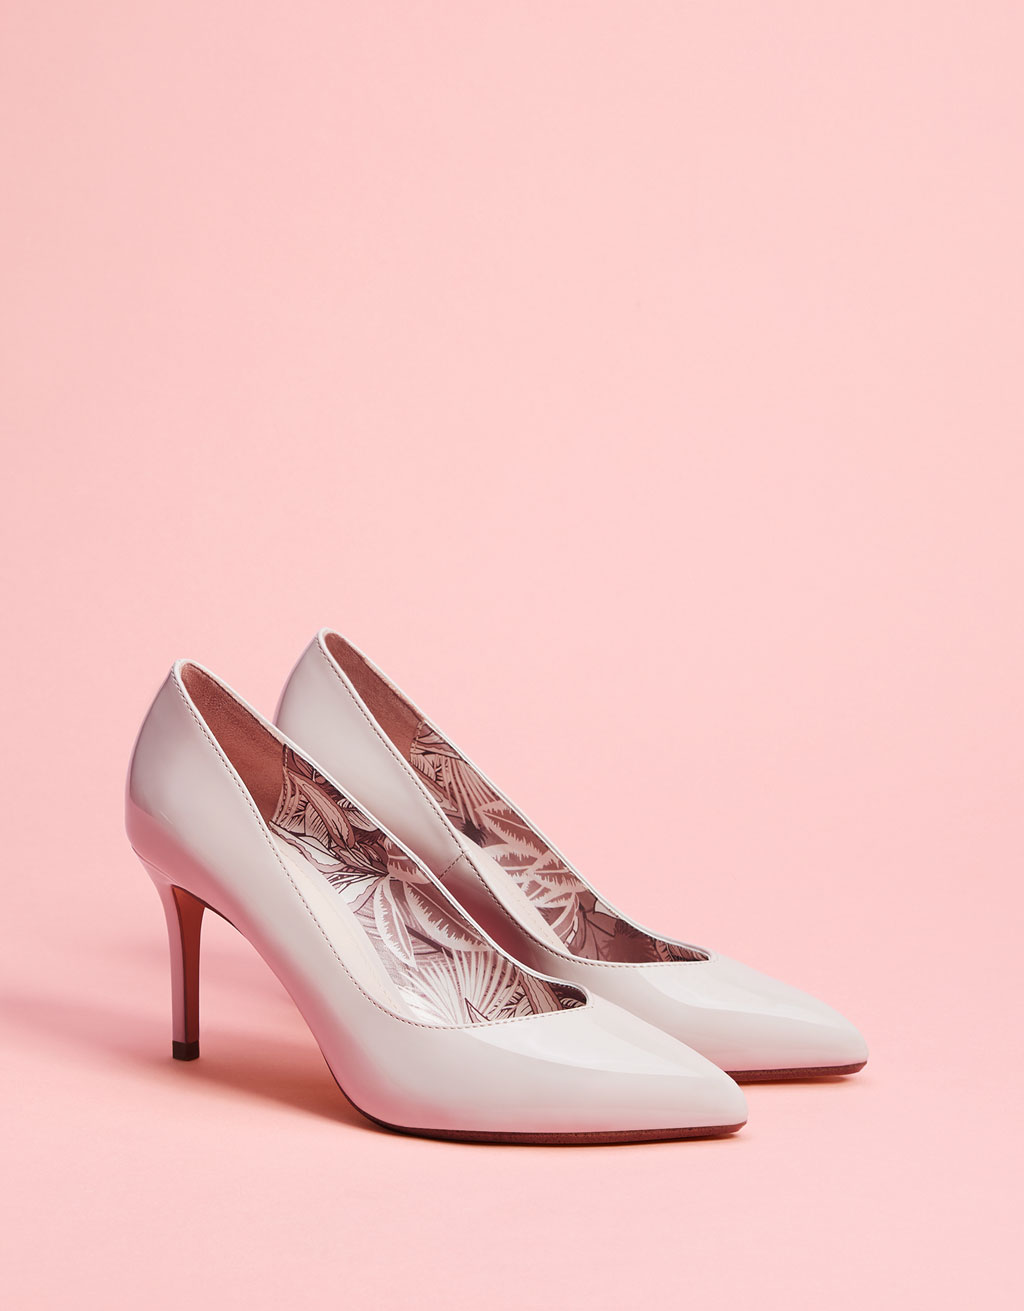 Faux patent leather stiletto heels